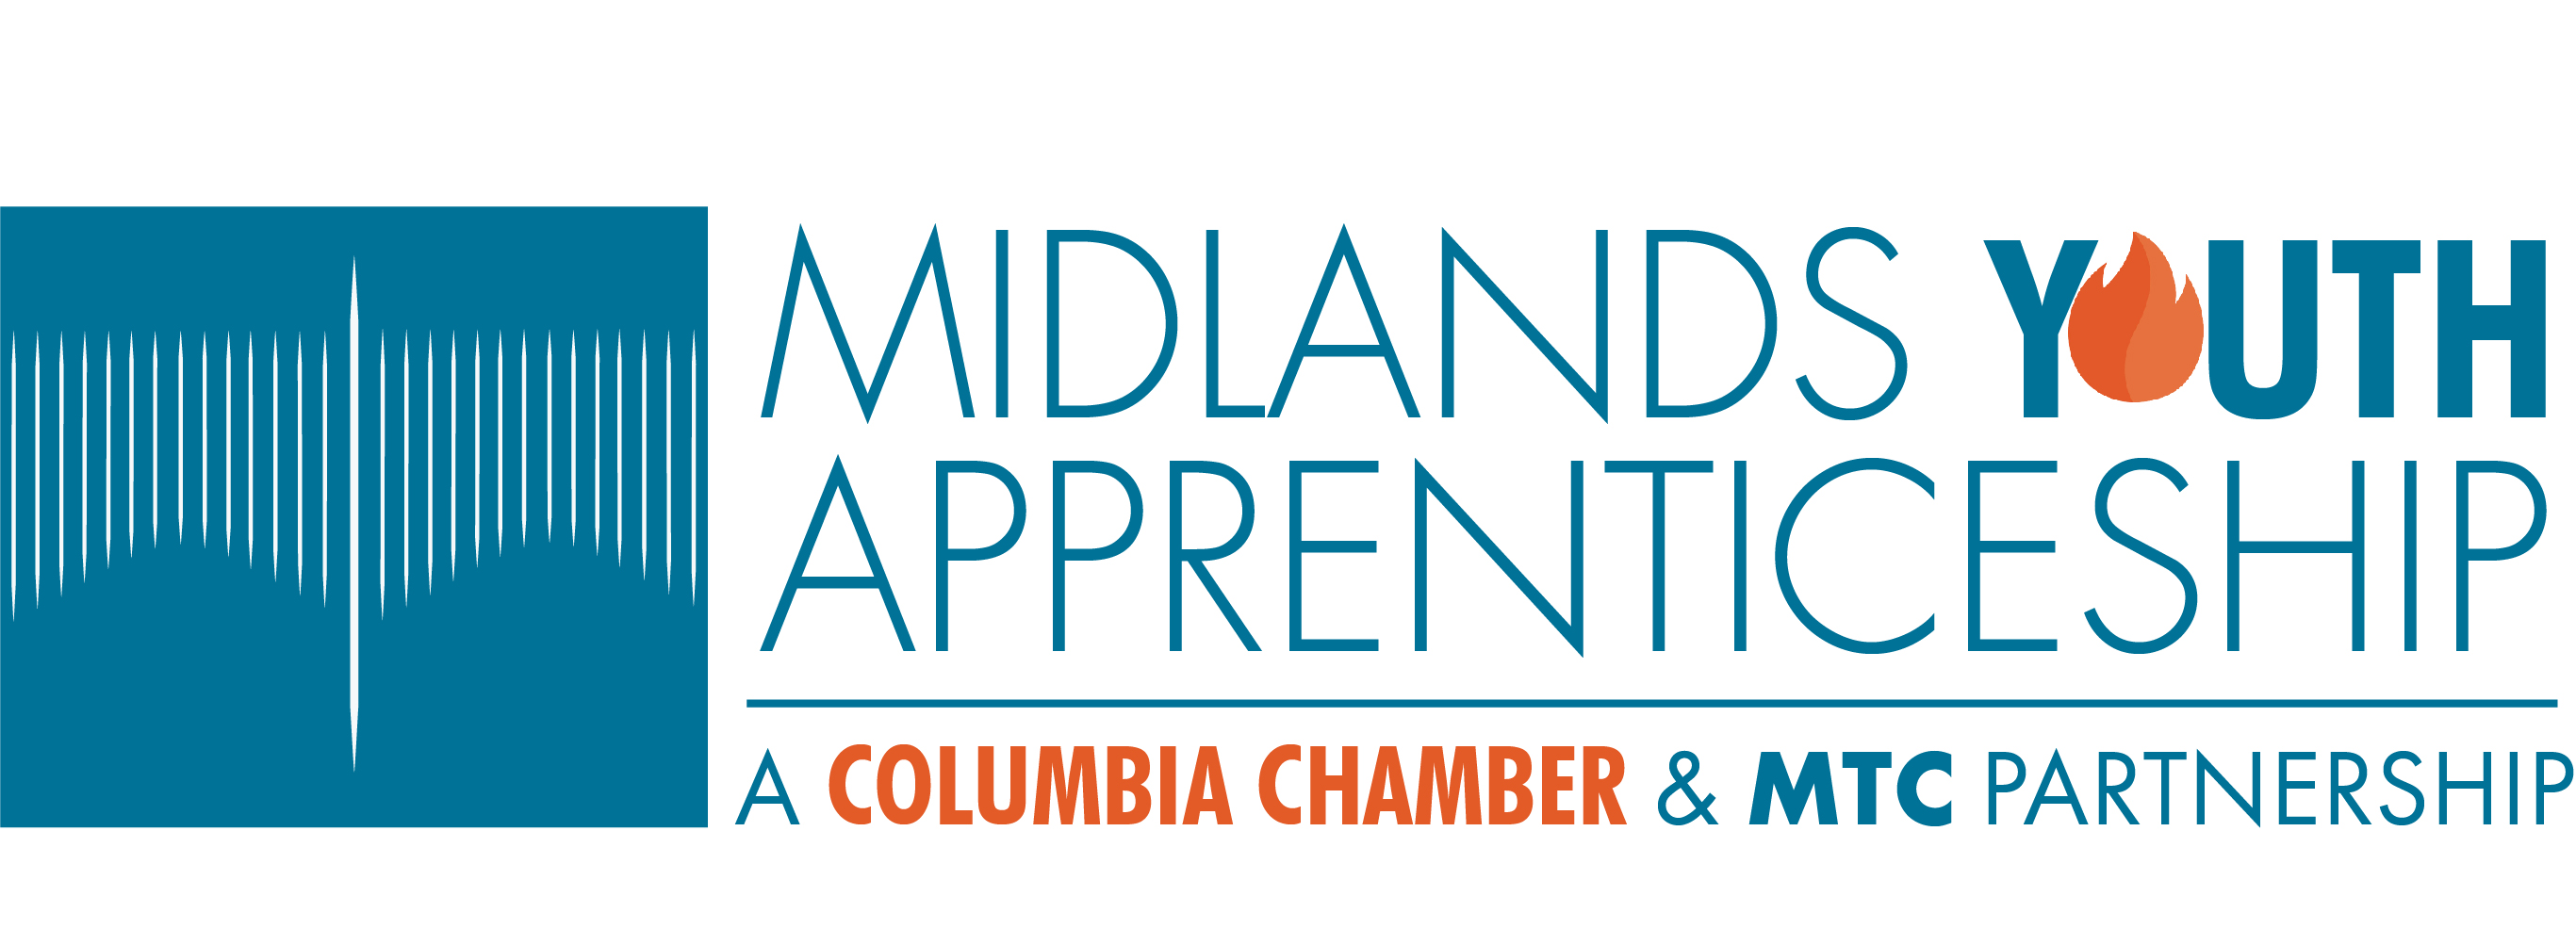 Midlands Youth Apprenticeship logo